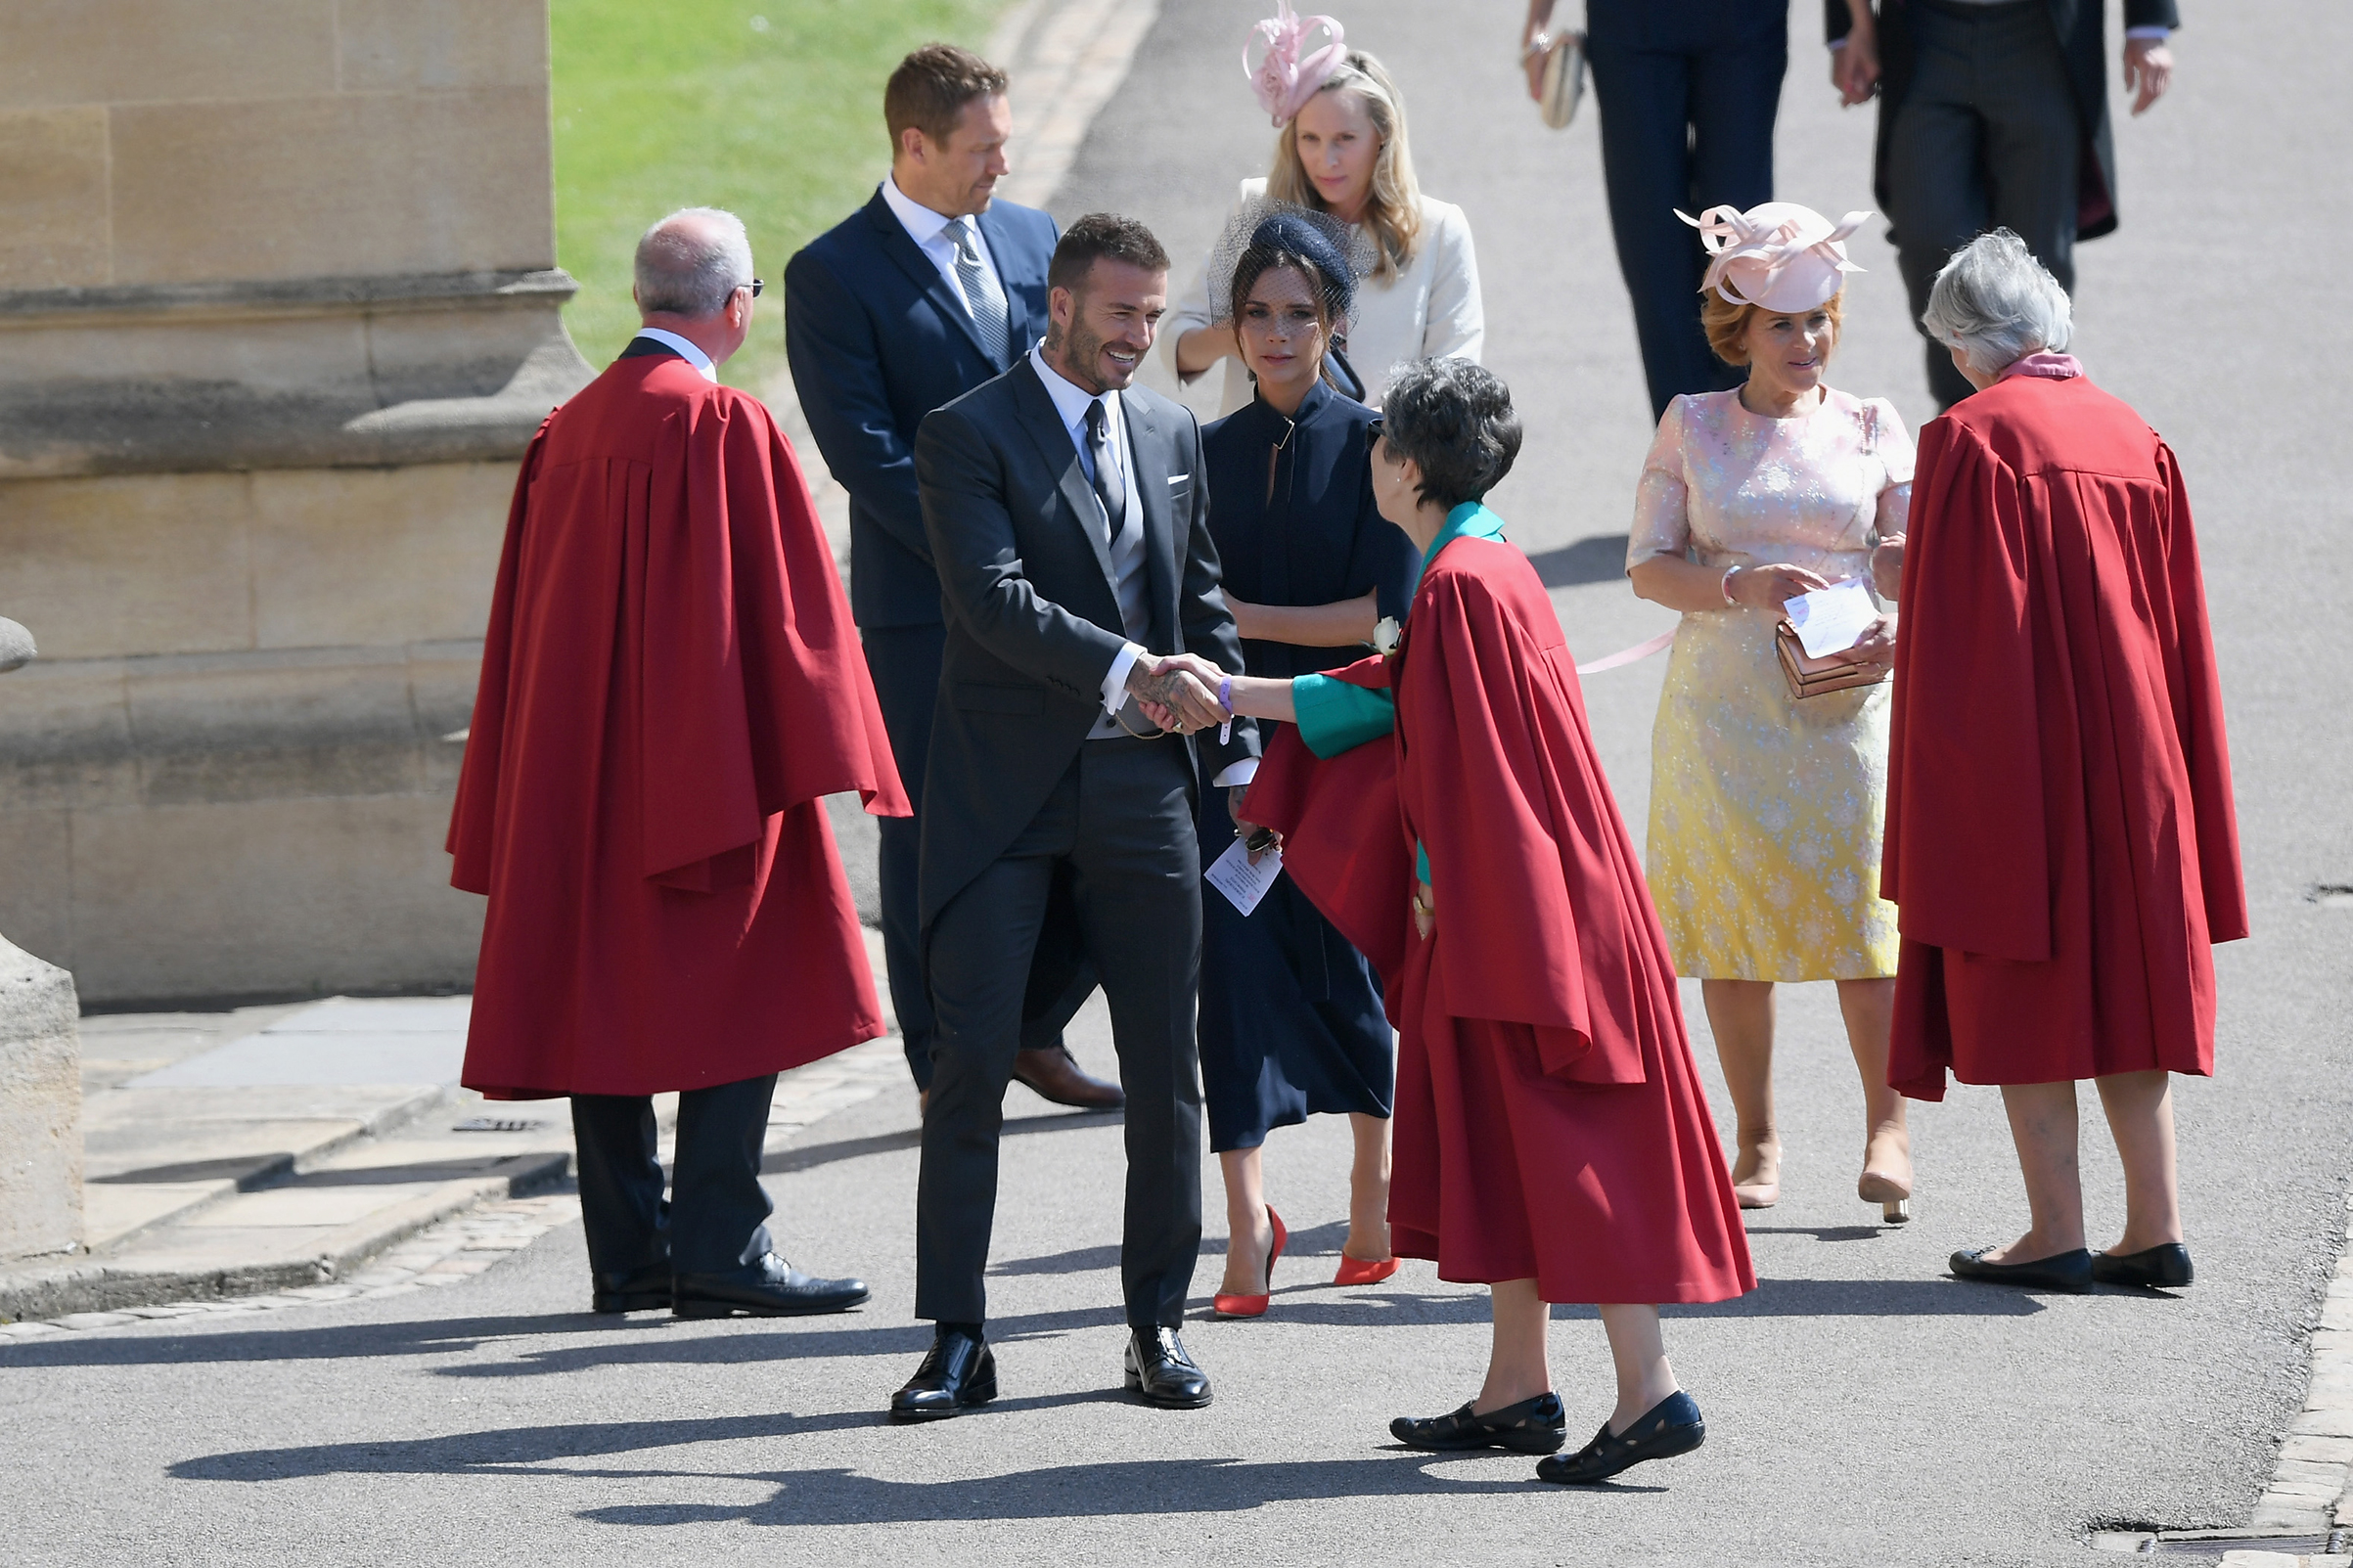 David and Victoria Beckham attend the wedding of Prince Harry and Meghan Markle at St George's Chapel, Windsor Castle on May 19, 2018.